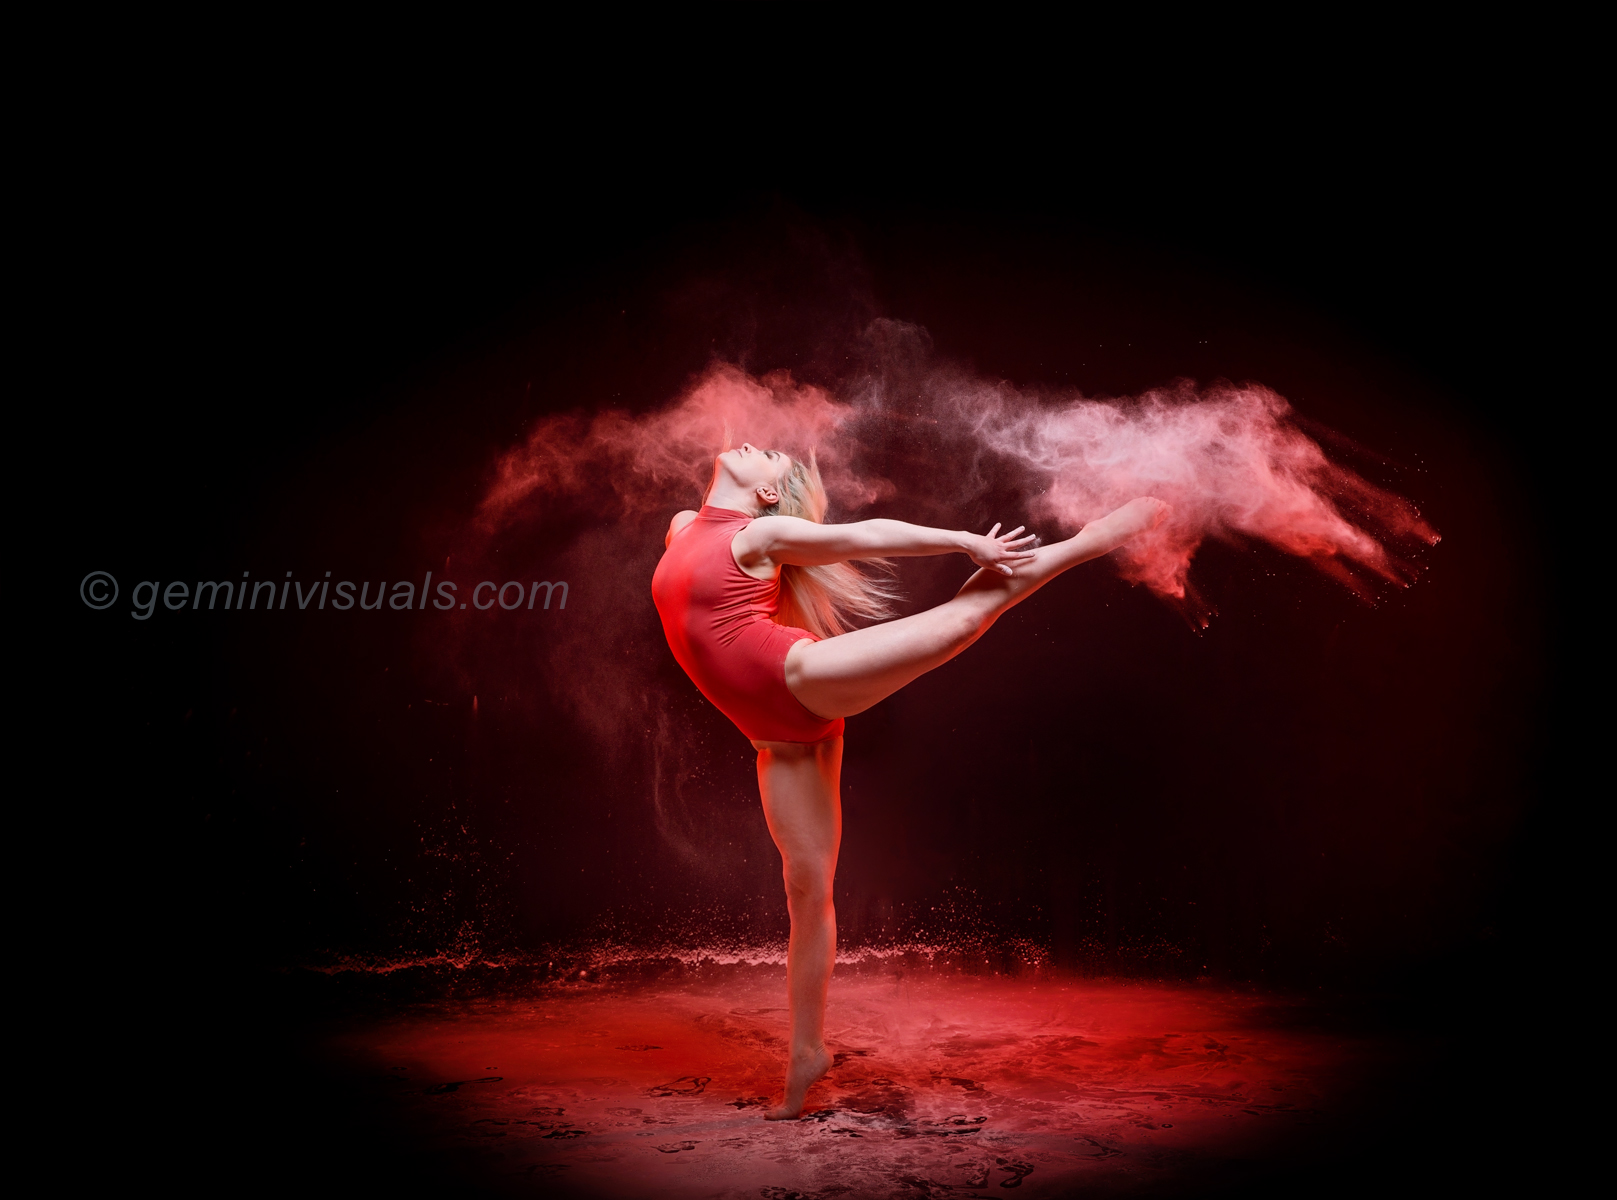 creative dance photography, creative dance, dance photos, adrienne thiessen, gemini visuals, essence of dance